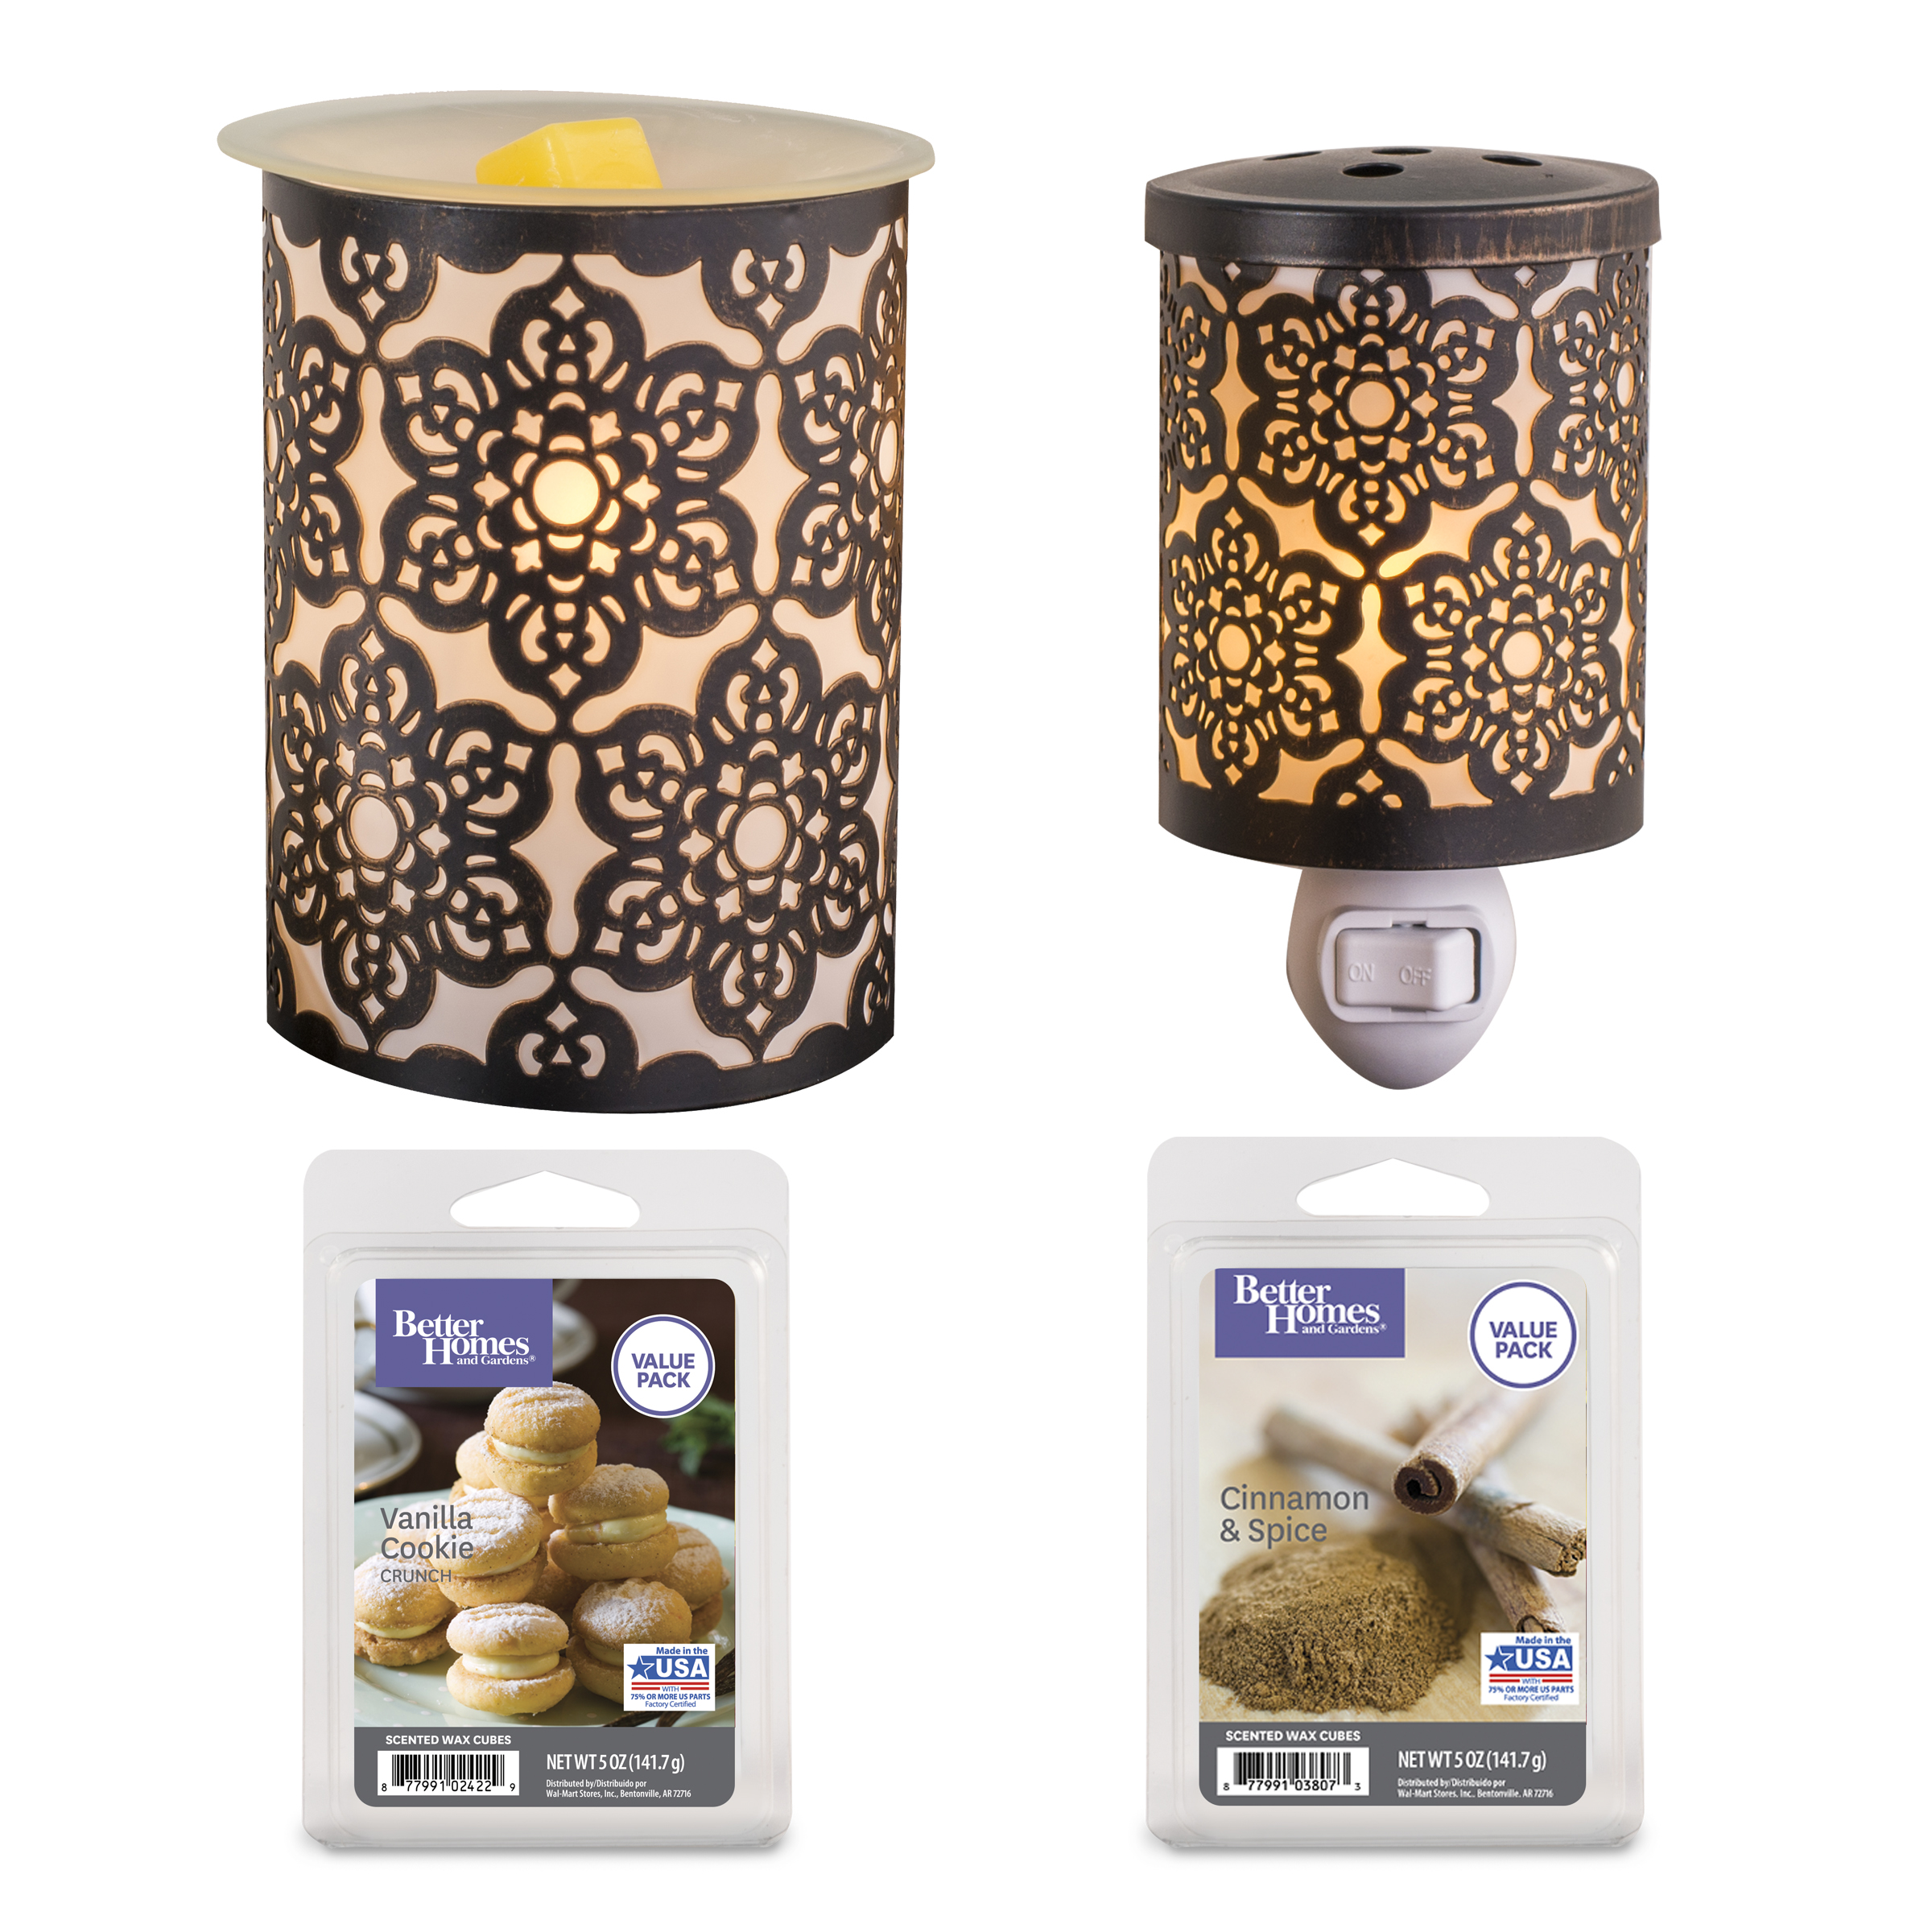 Better Homes and Gardens 4 Piece Wax Warmer Gift Set - Juliet